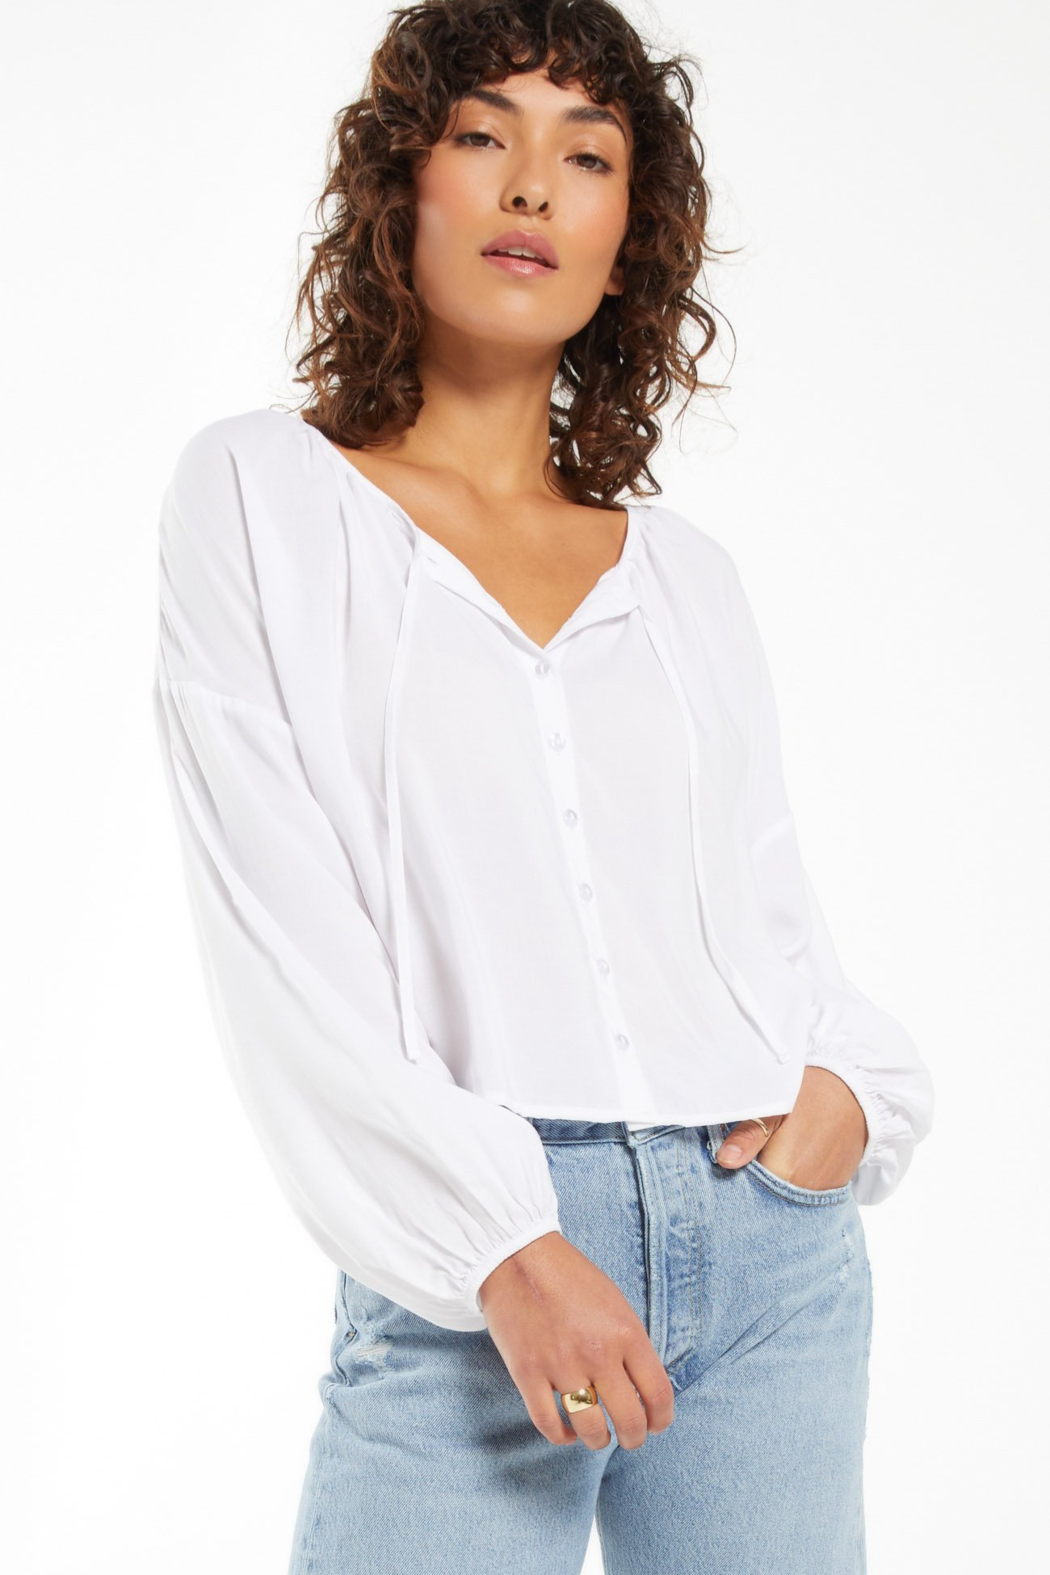 z supply Z Supply Coral Isle Top - White - Front Full Image